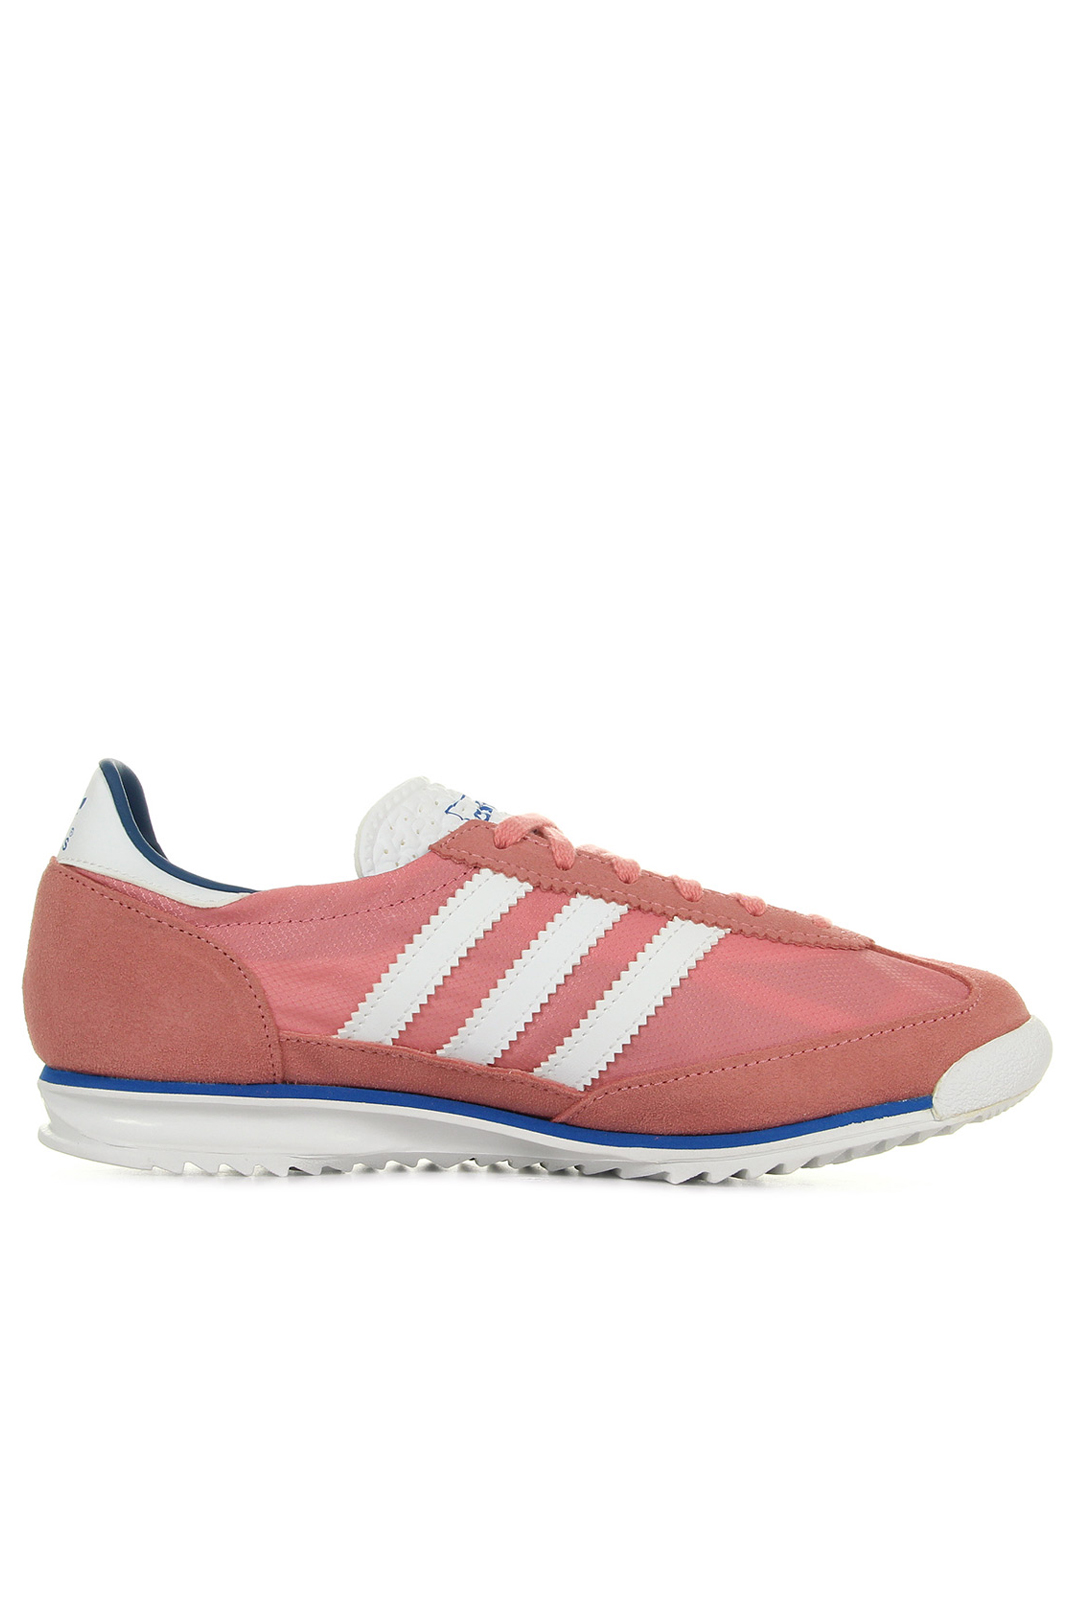 Baskets / Sneakers  Adidas M19230 SL72 W PINK